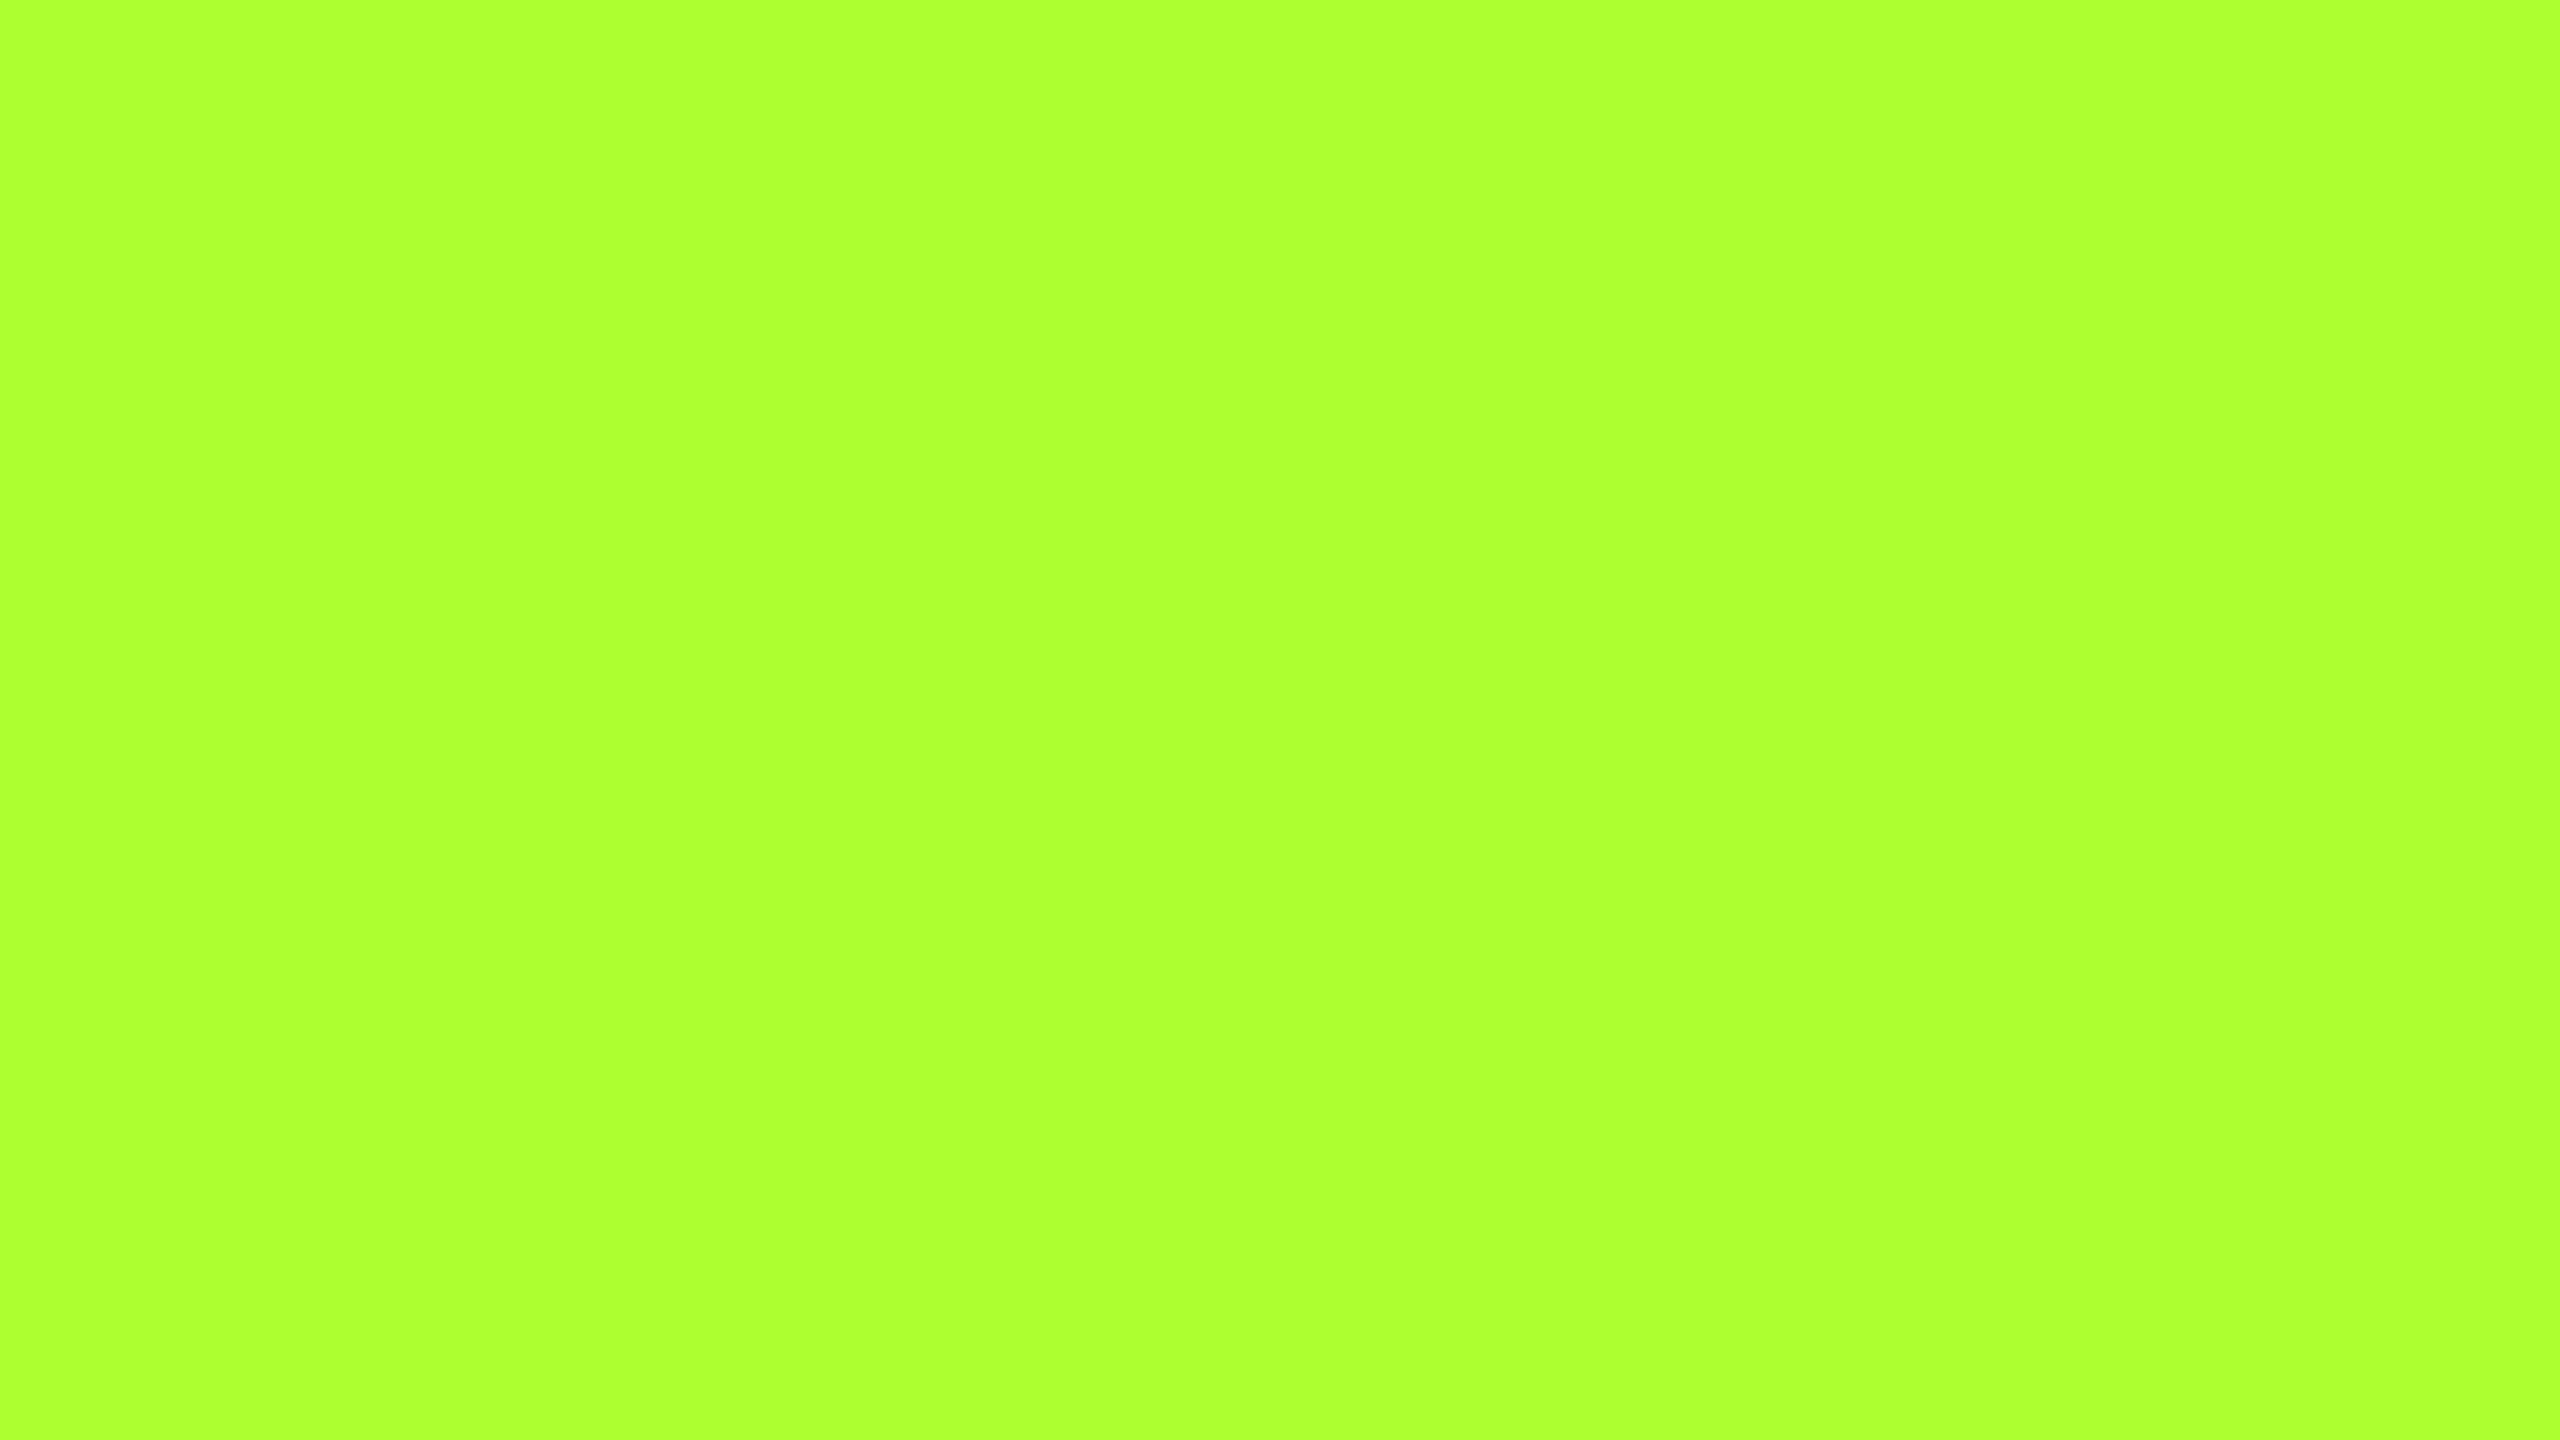 2560x1440 Green-yellow Solid Color Background